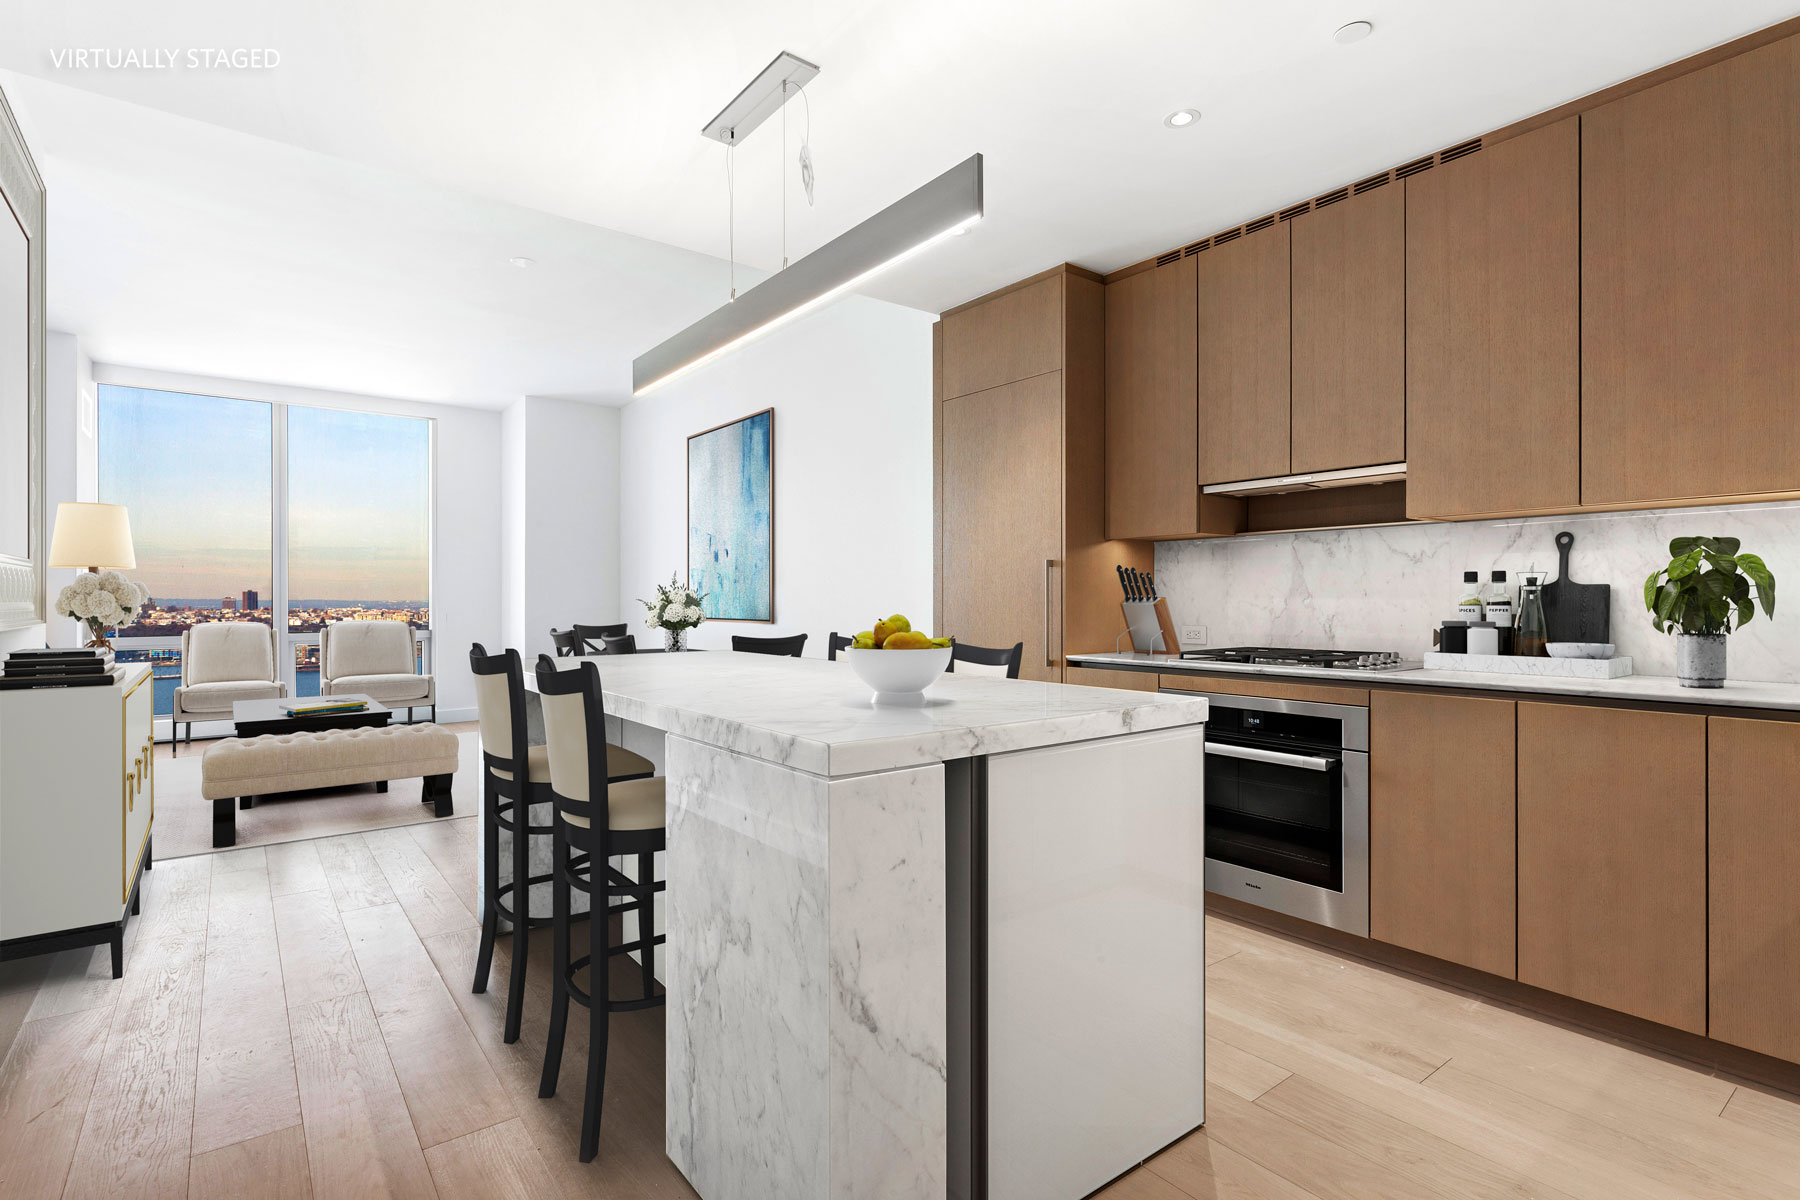 """Experience the Ultimate Lifestyle in the New Heart of NYC - the  most talked about neighborhood, Hudson Yards!Residence 27D is an exceptional 1,571 square foot, two-bedroom home with ceilings up to 9'10"""" and sunset views of the Hudson River. The great room features an open kitchen with a marble island, oak wood cabinetry and Miele appliances including wine storage. The master bedroom suite features generous closet space and a luxurious master bath. A second bedroom with en-suite bath, a gracious entry foyer, and a powder room for guests make this a truly extraordinary home.Designed by Diller Scofidio + Renfro in collaboration with Rockwell Group, Fifteen Hudson Yards offers residents over 40,000 square feet of amenities across three floors. Floor 50 has been devoted to the full range of fitness and wellness opportunities, including an aquatics center with a 75-foot long three-lane swimming pool, a 3,500 square foot fitness center designed by The Wright Fit, private studio for yoga, stretching and group fitness classes, private spa suites with treatment rooms, and a beauty bar for hair and makeup services.Floor 51 features two corner private dinner suites including wine storage and tasting rooms, lounge with breathtaking Hudson River views, club room with billiards tables, card tables and large-screen TV, a screening room, business center, golf club lounge, and an atelier with communal working table and lounge seating.No pets please.This incredible, never lived in apartment, is being offered with NO FEE."""